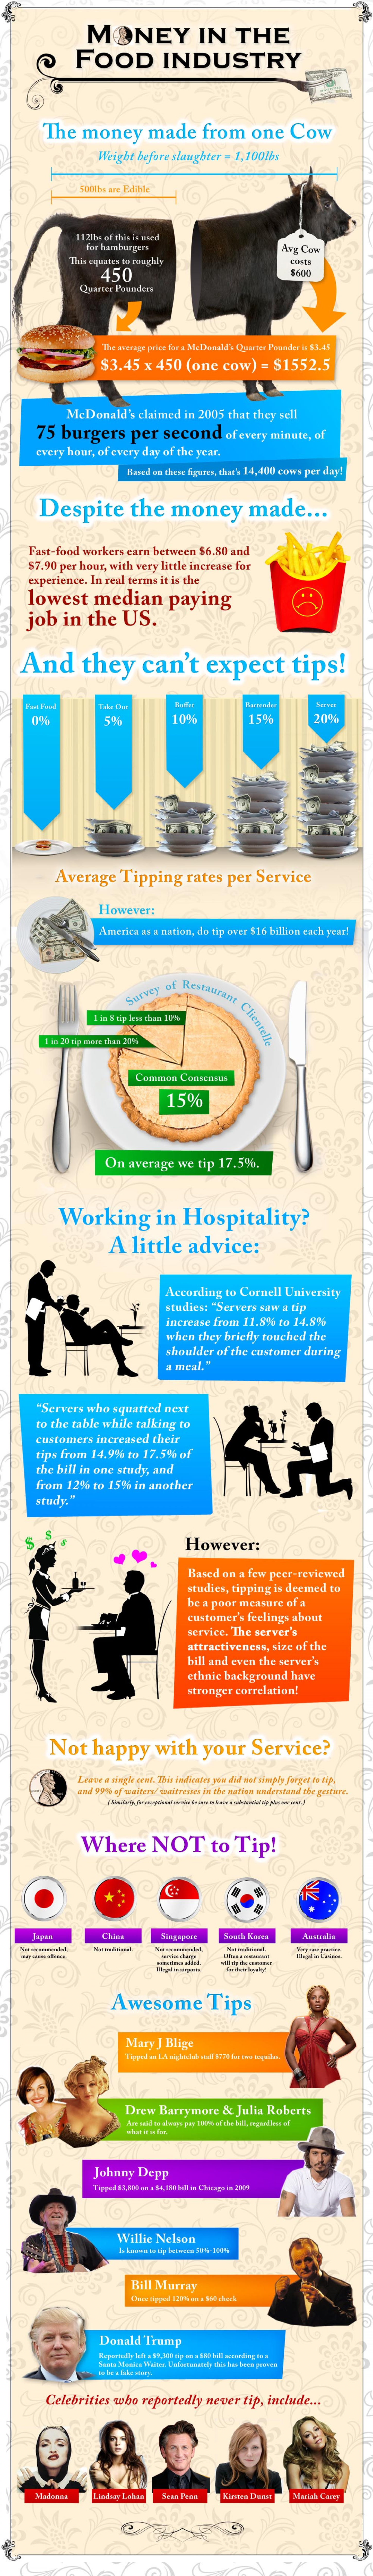 Money in the Food Industry  Infographic